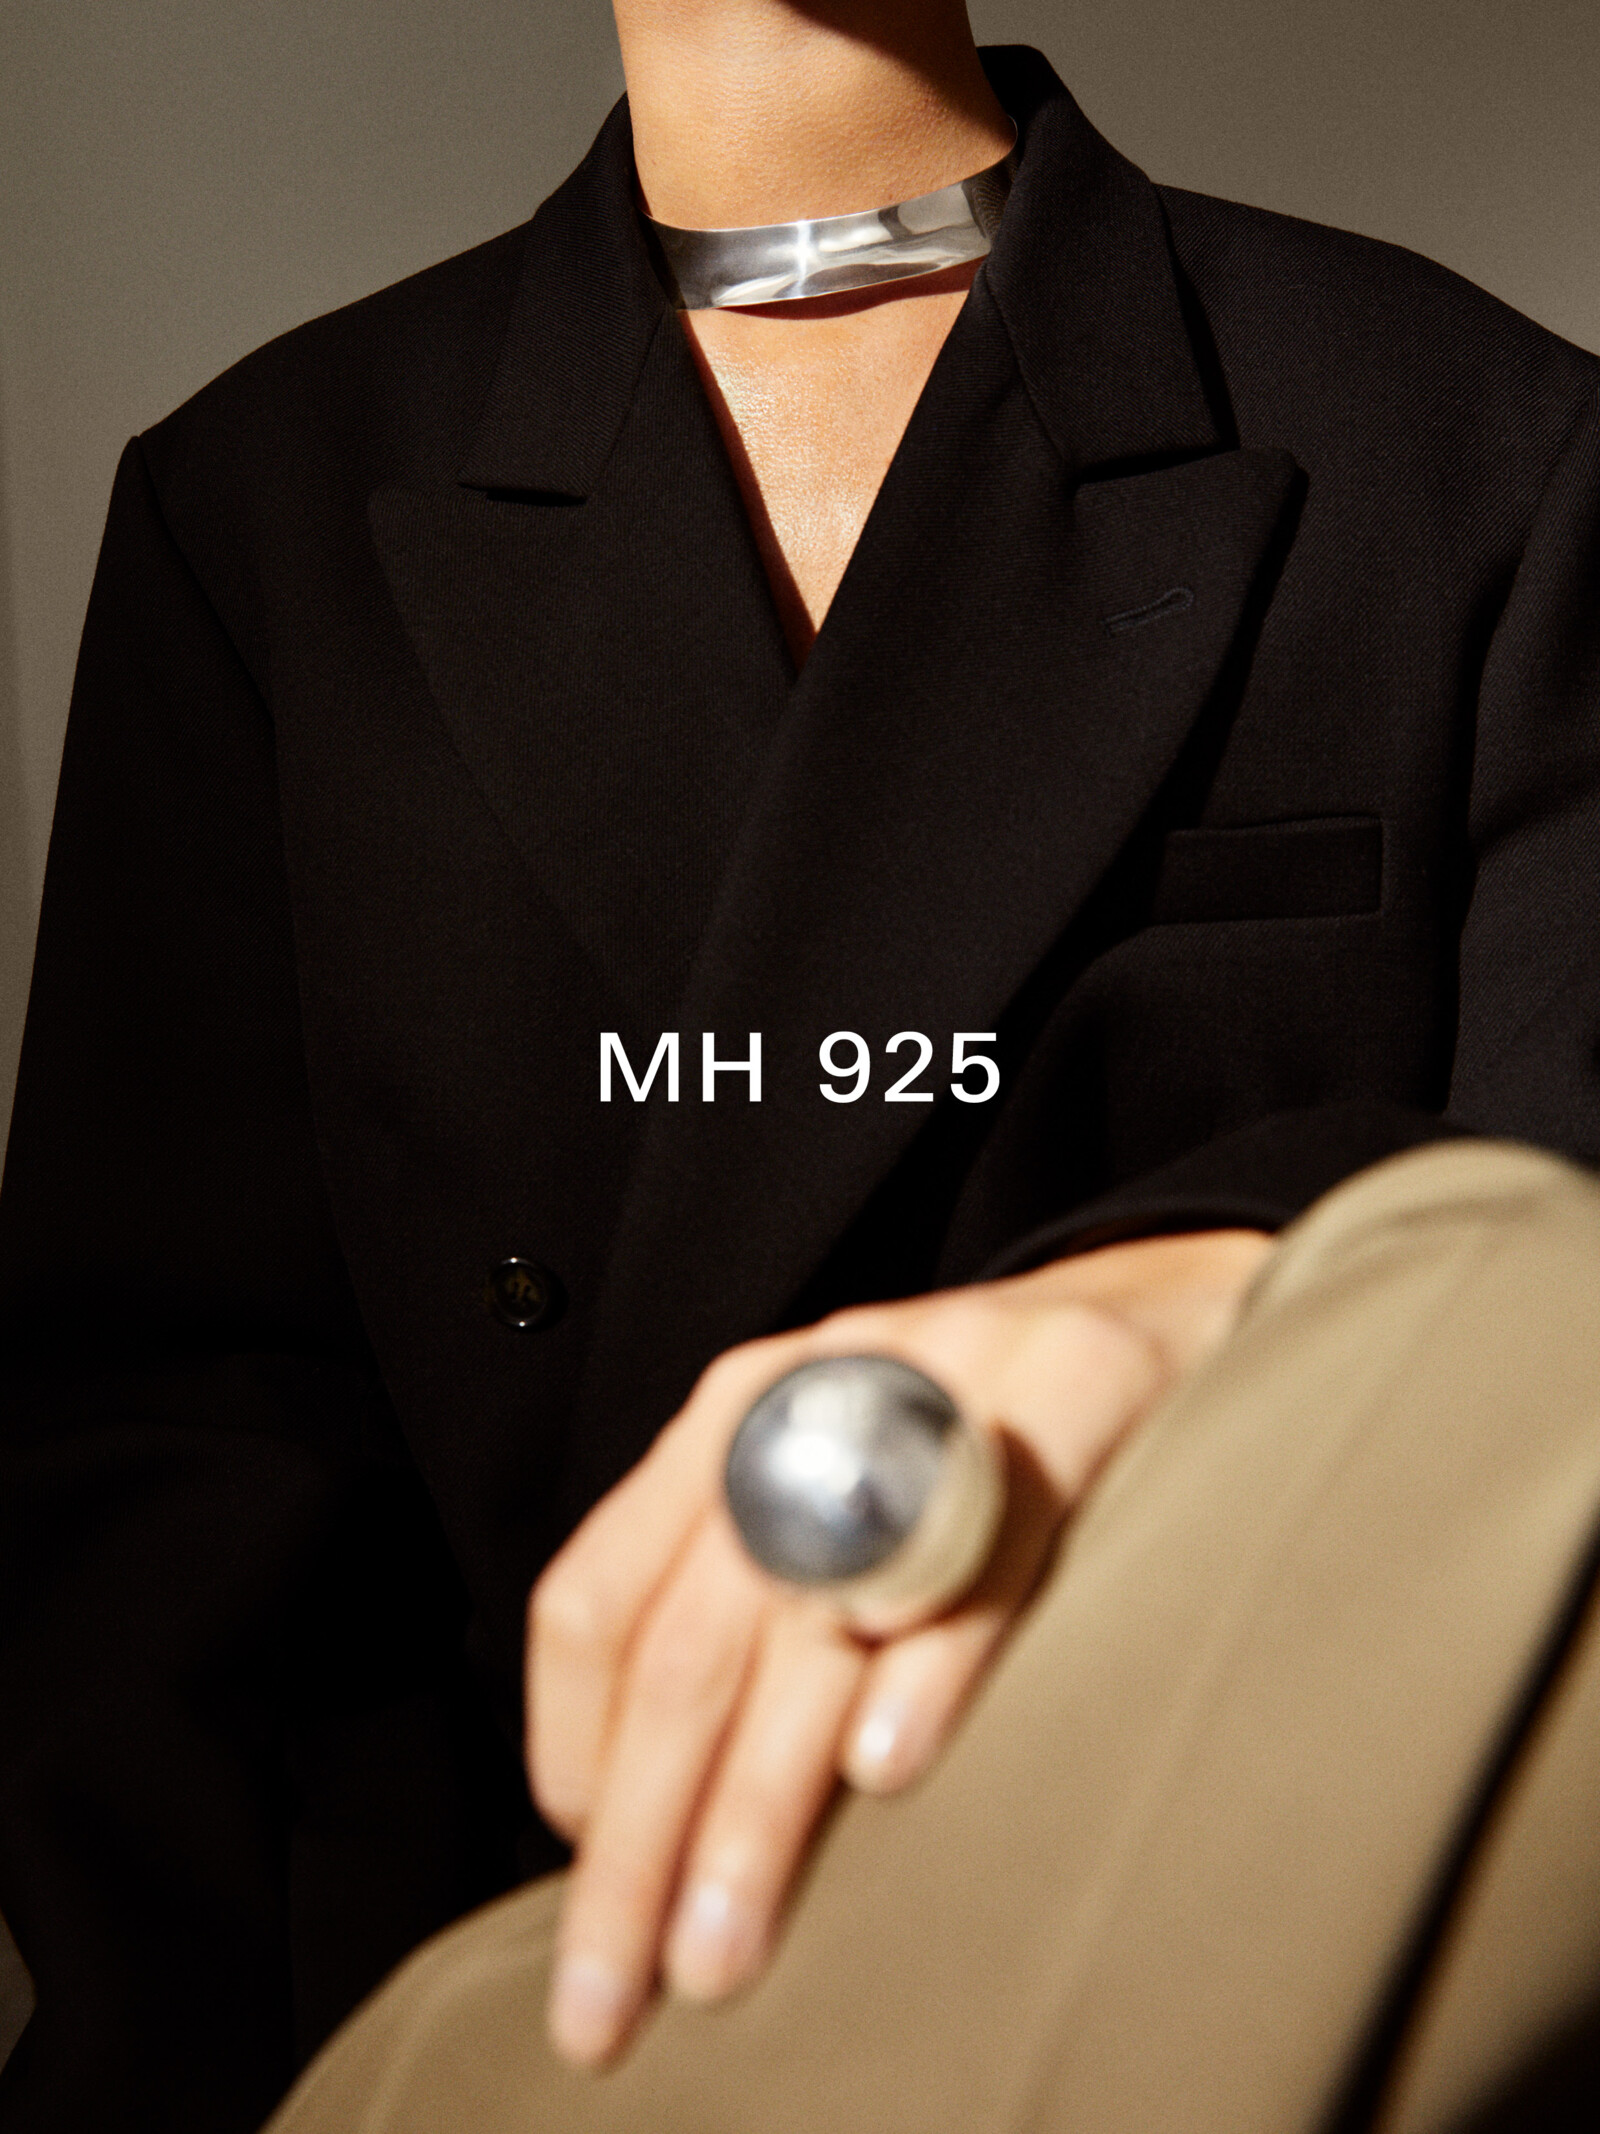 MH 925 images7